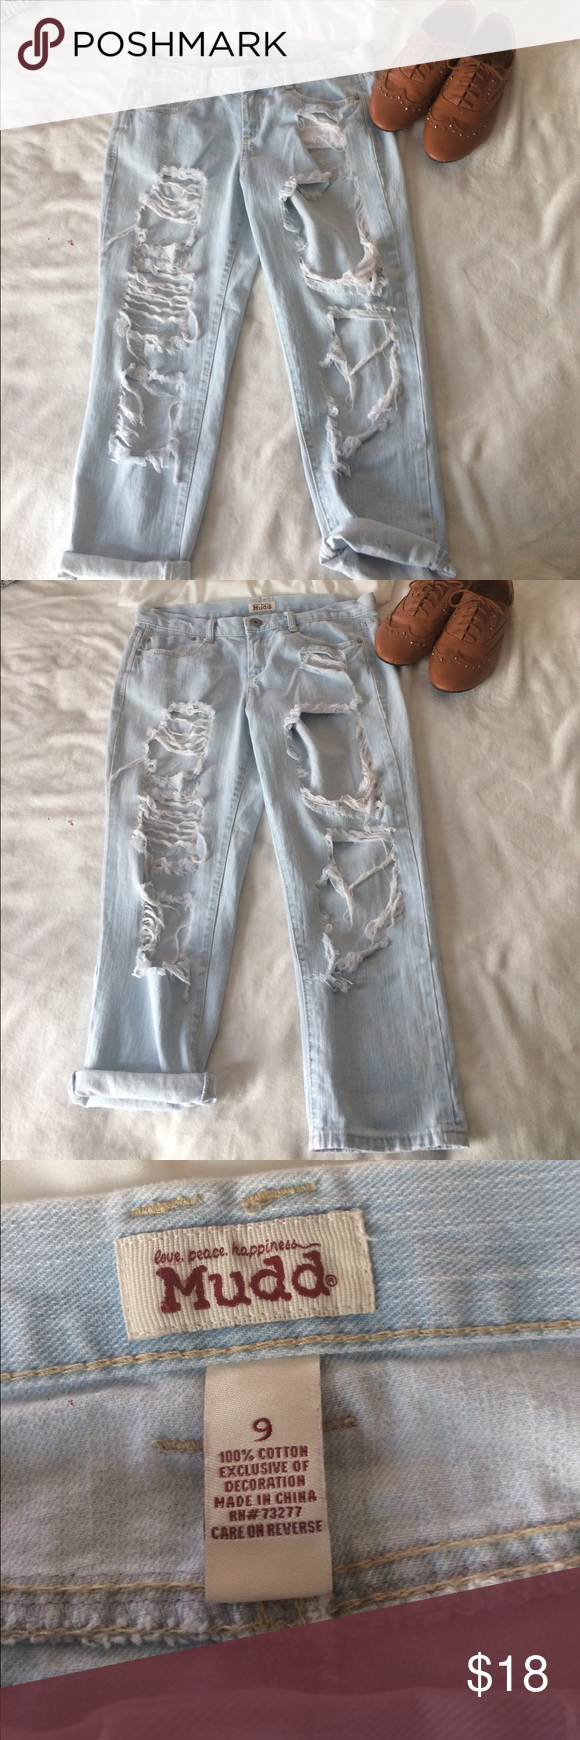 43b0b0b9a643ed67defd73850218ff7d - How To Get Dirt Stains Out Of Light Jeans